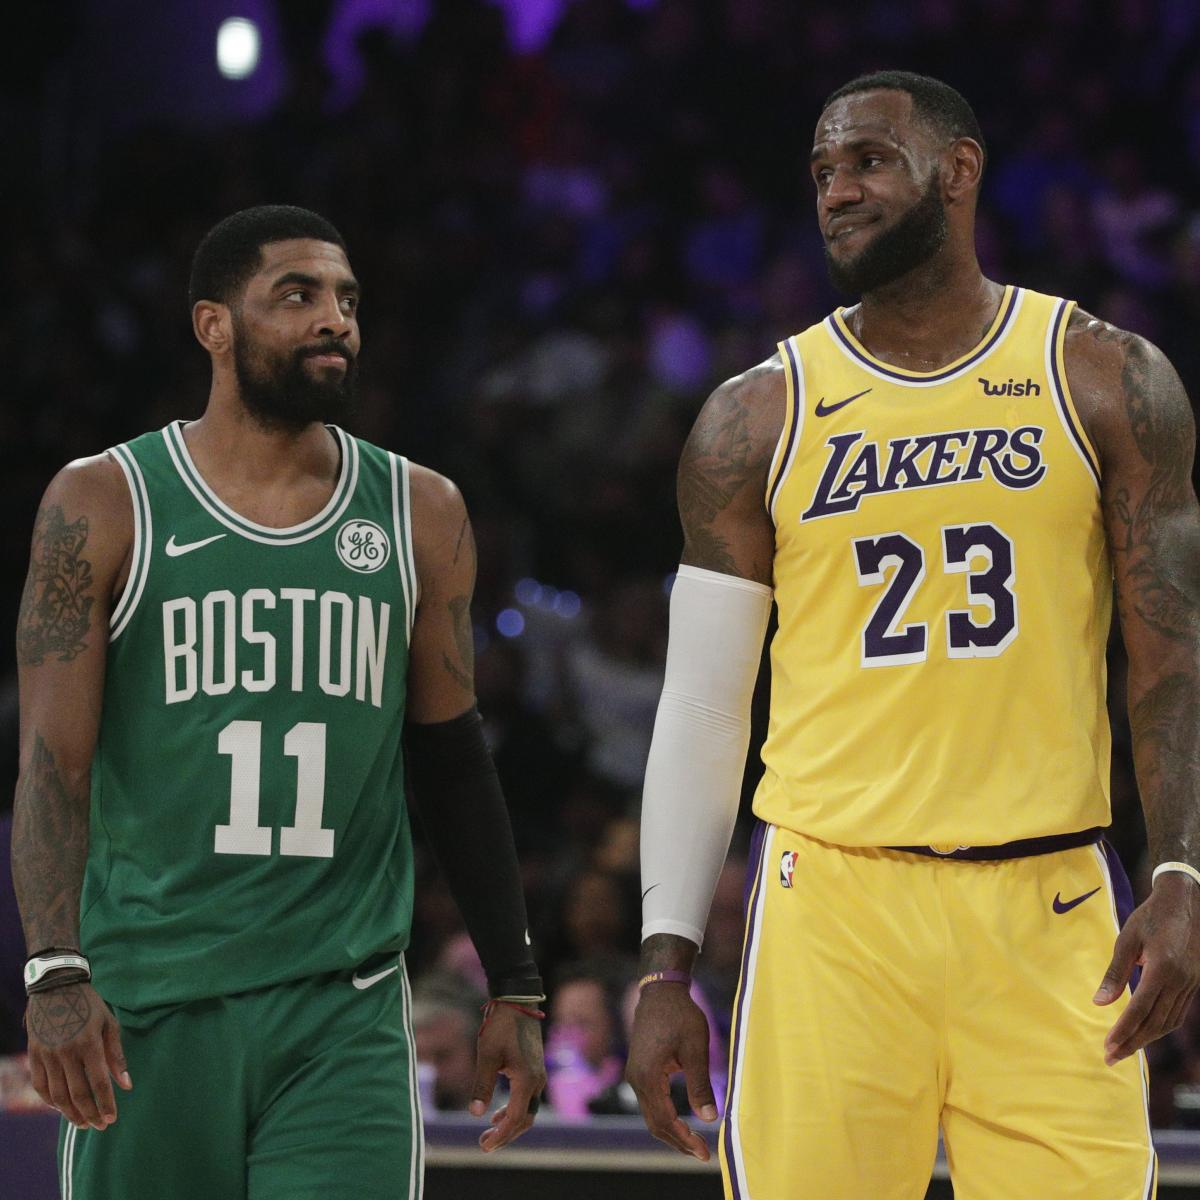 """ESPN NBA analyst Brian Windhorst said Friday he's starting to get the sense Los Angeles Lakers forward LeBron James and Boston Celtics guard Kyrie Irving """"kinda need each other..."""